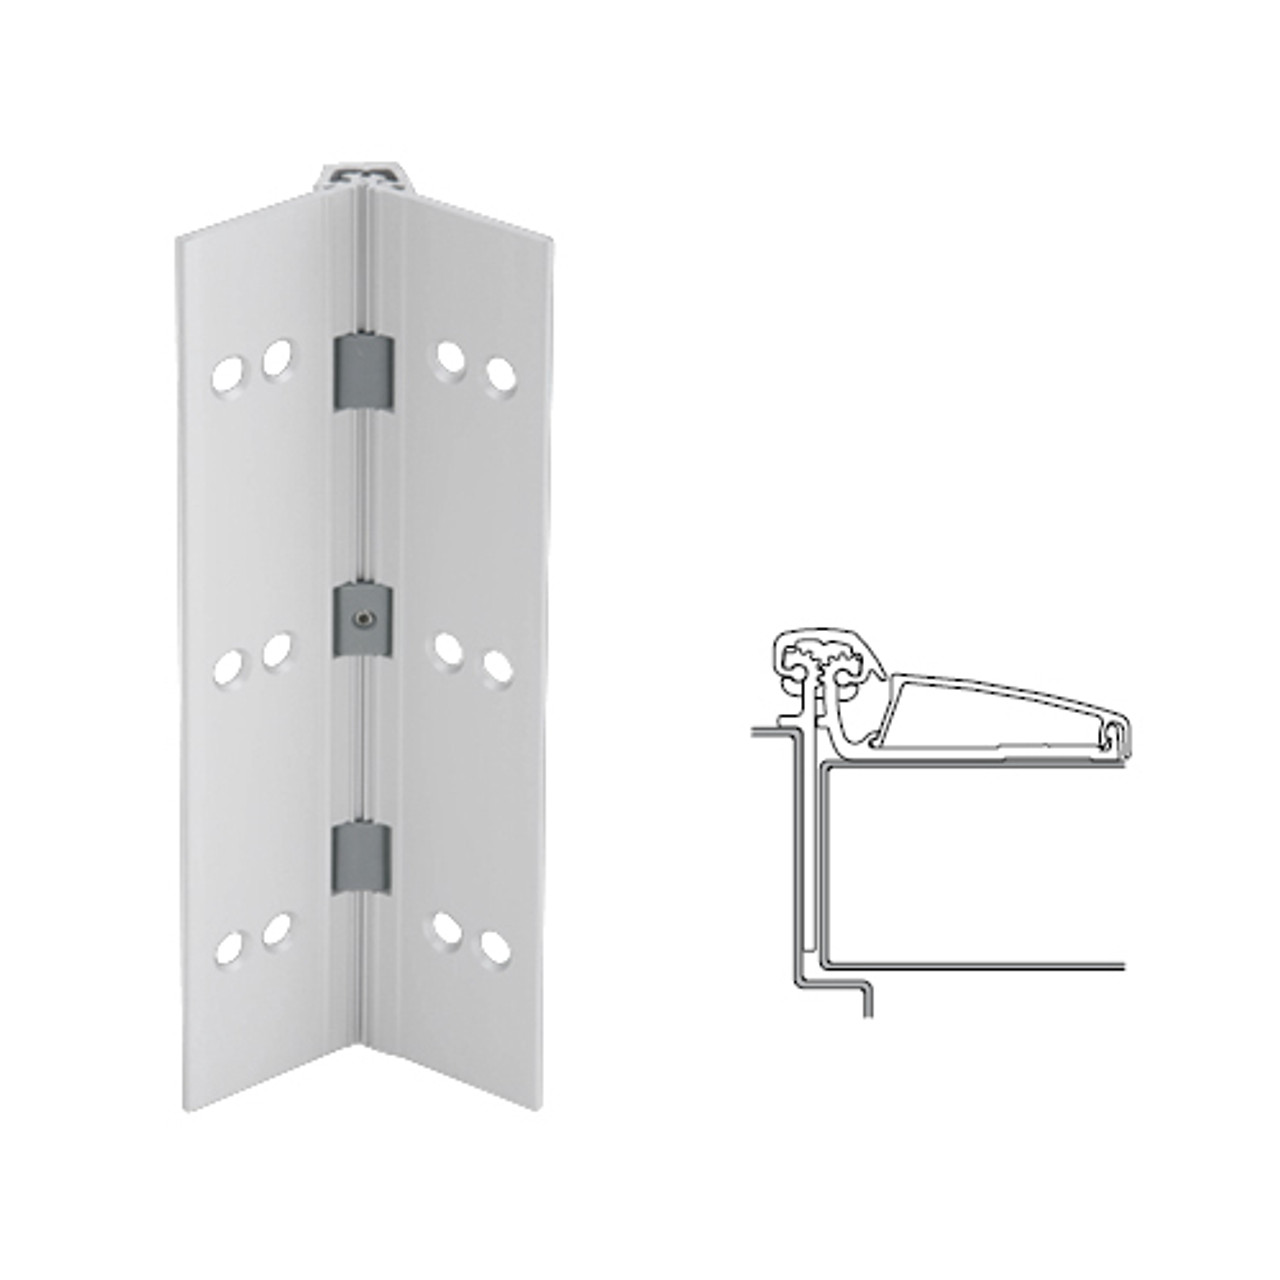 046XY-US28-85-TEKWD IVES Adjustable Half Surface Continuous Geared Hinges with Wood Screws in Satin Aluminum